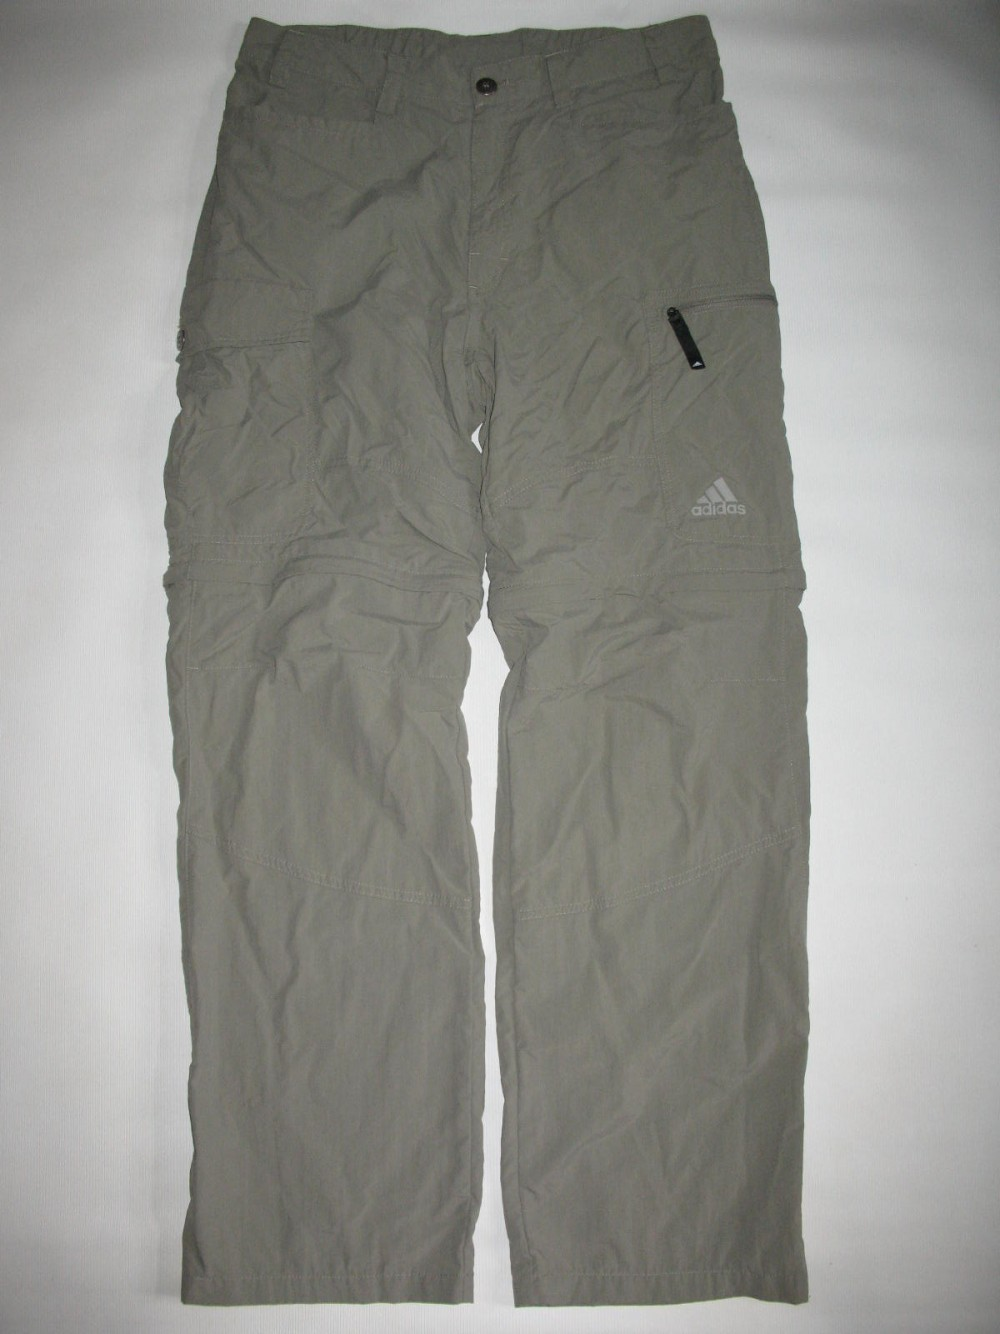 Штаны ADIDAS ht hike 2in1 outdoor pants (размер 50/L) - 6